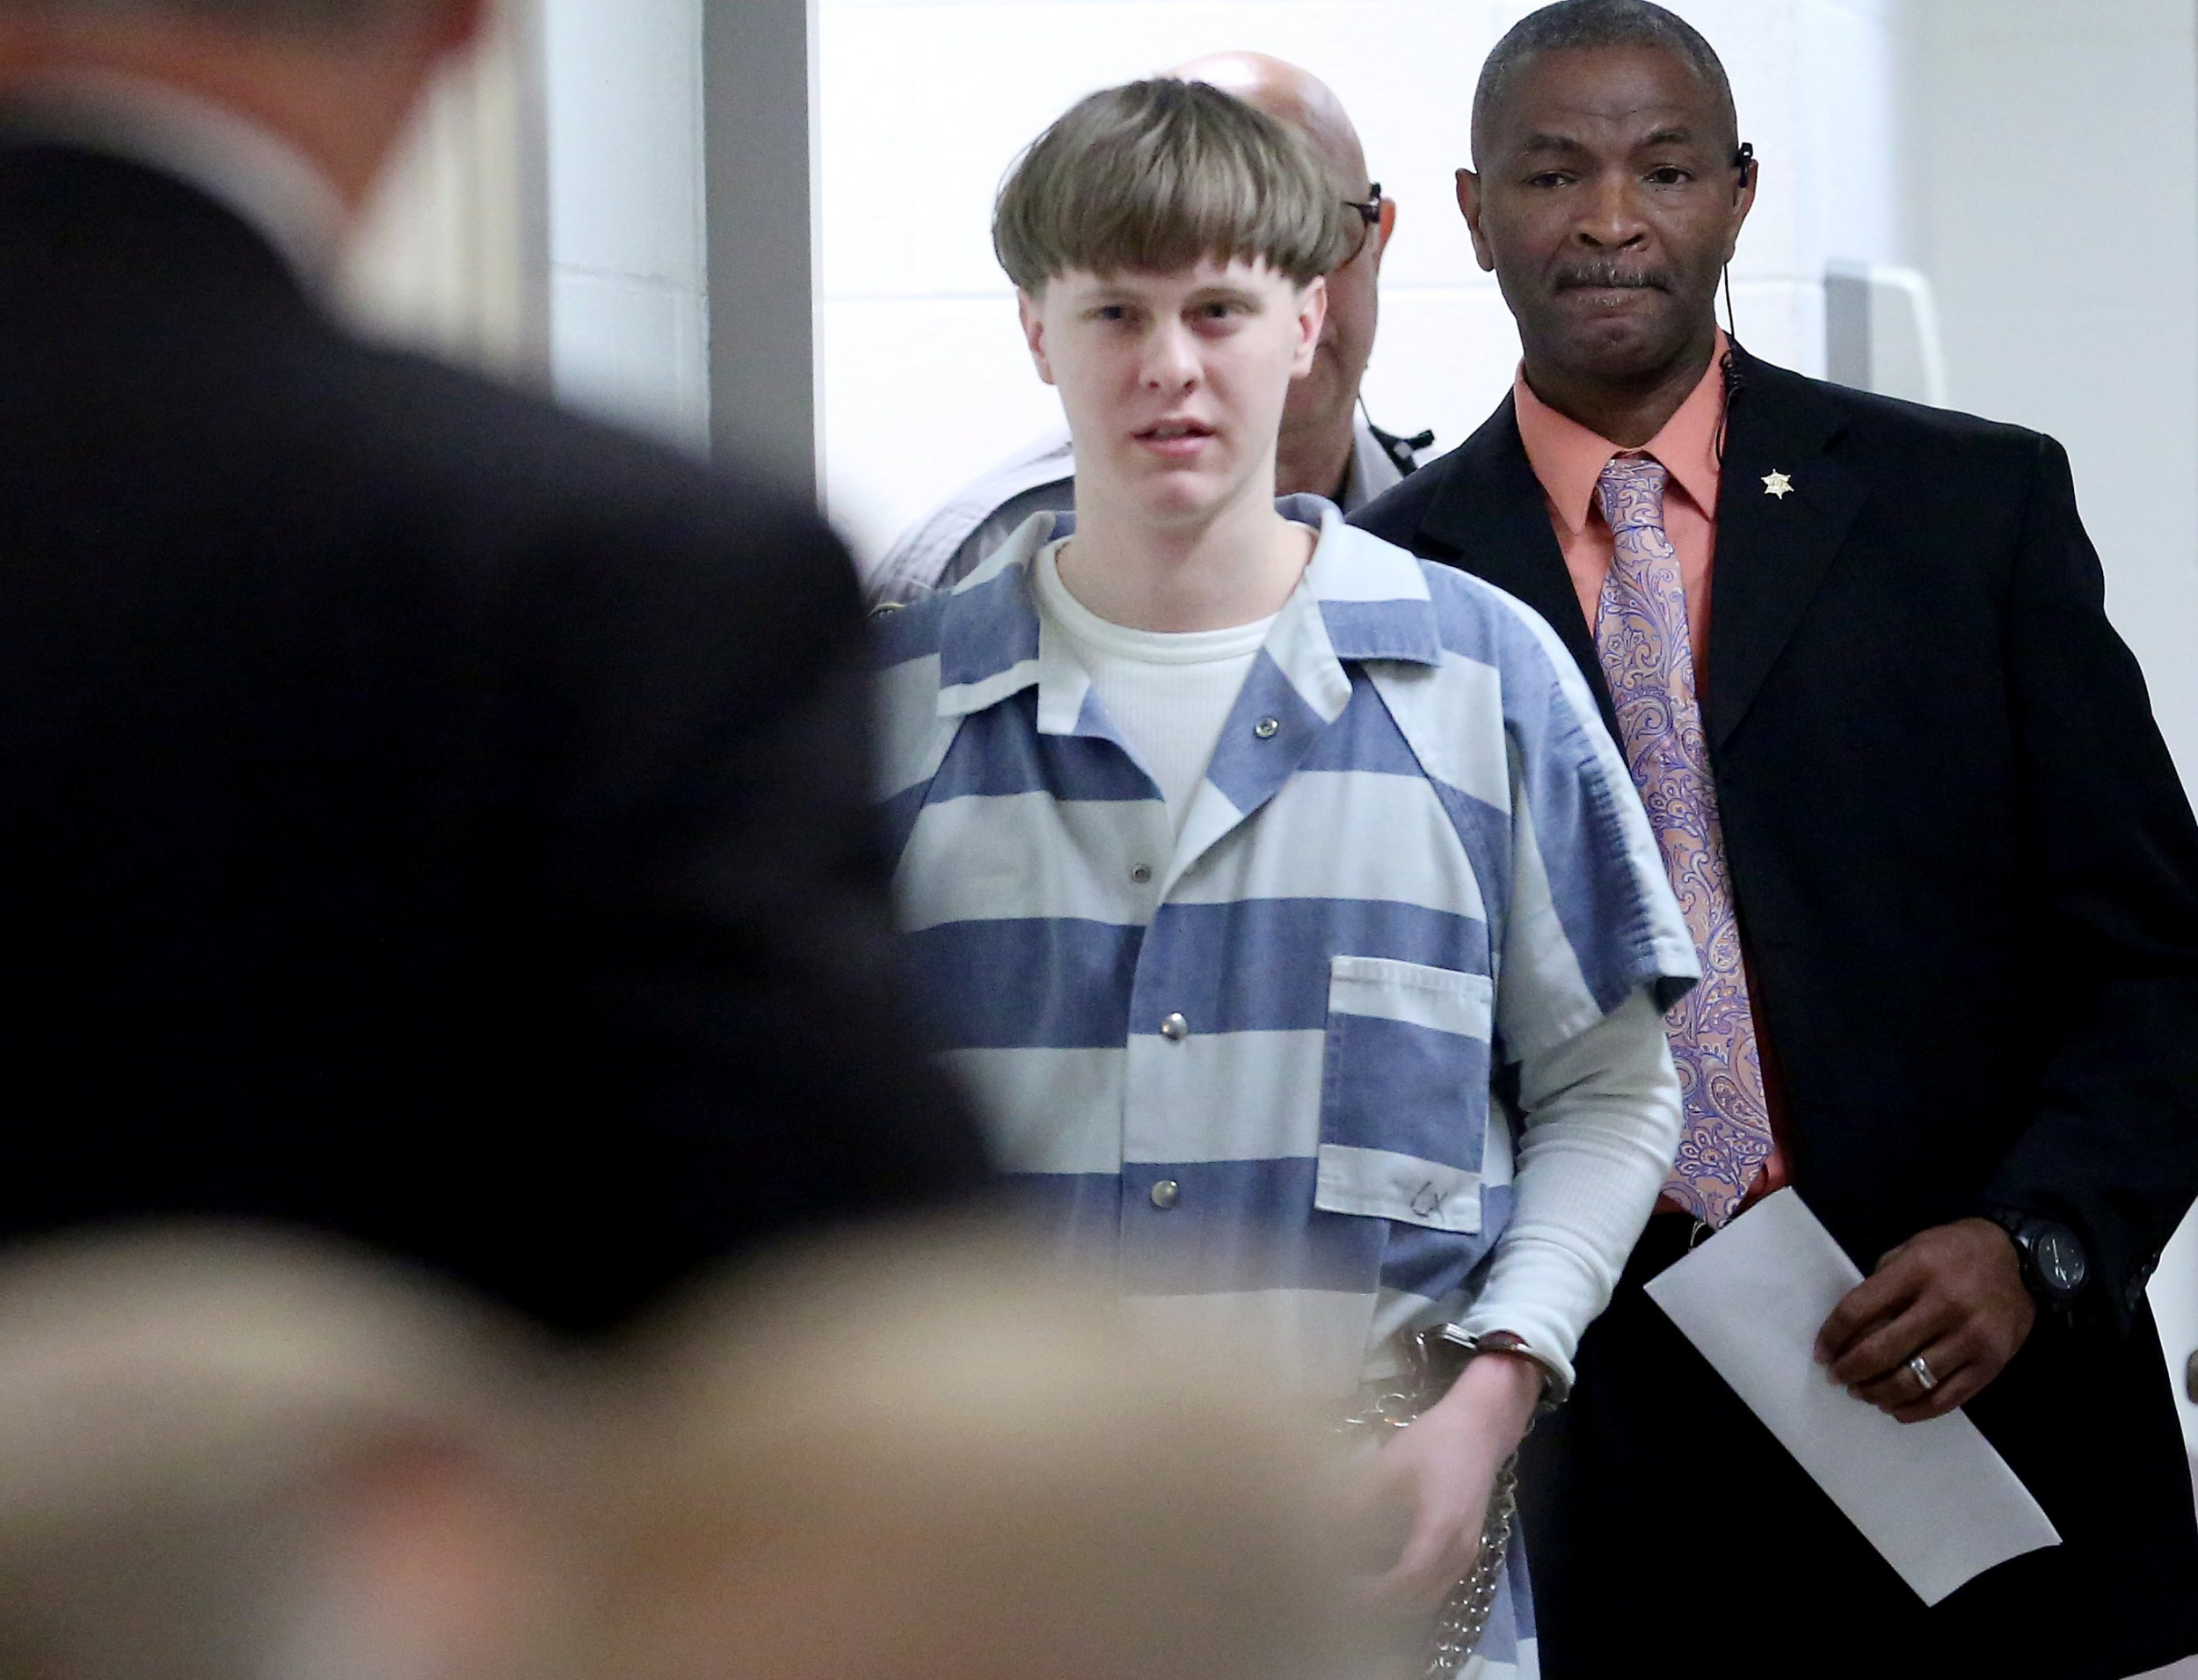 Dylann Roof T-Shirts and sweatshirts are being sold online by a Silicon Valley-backed company